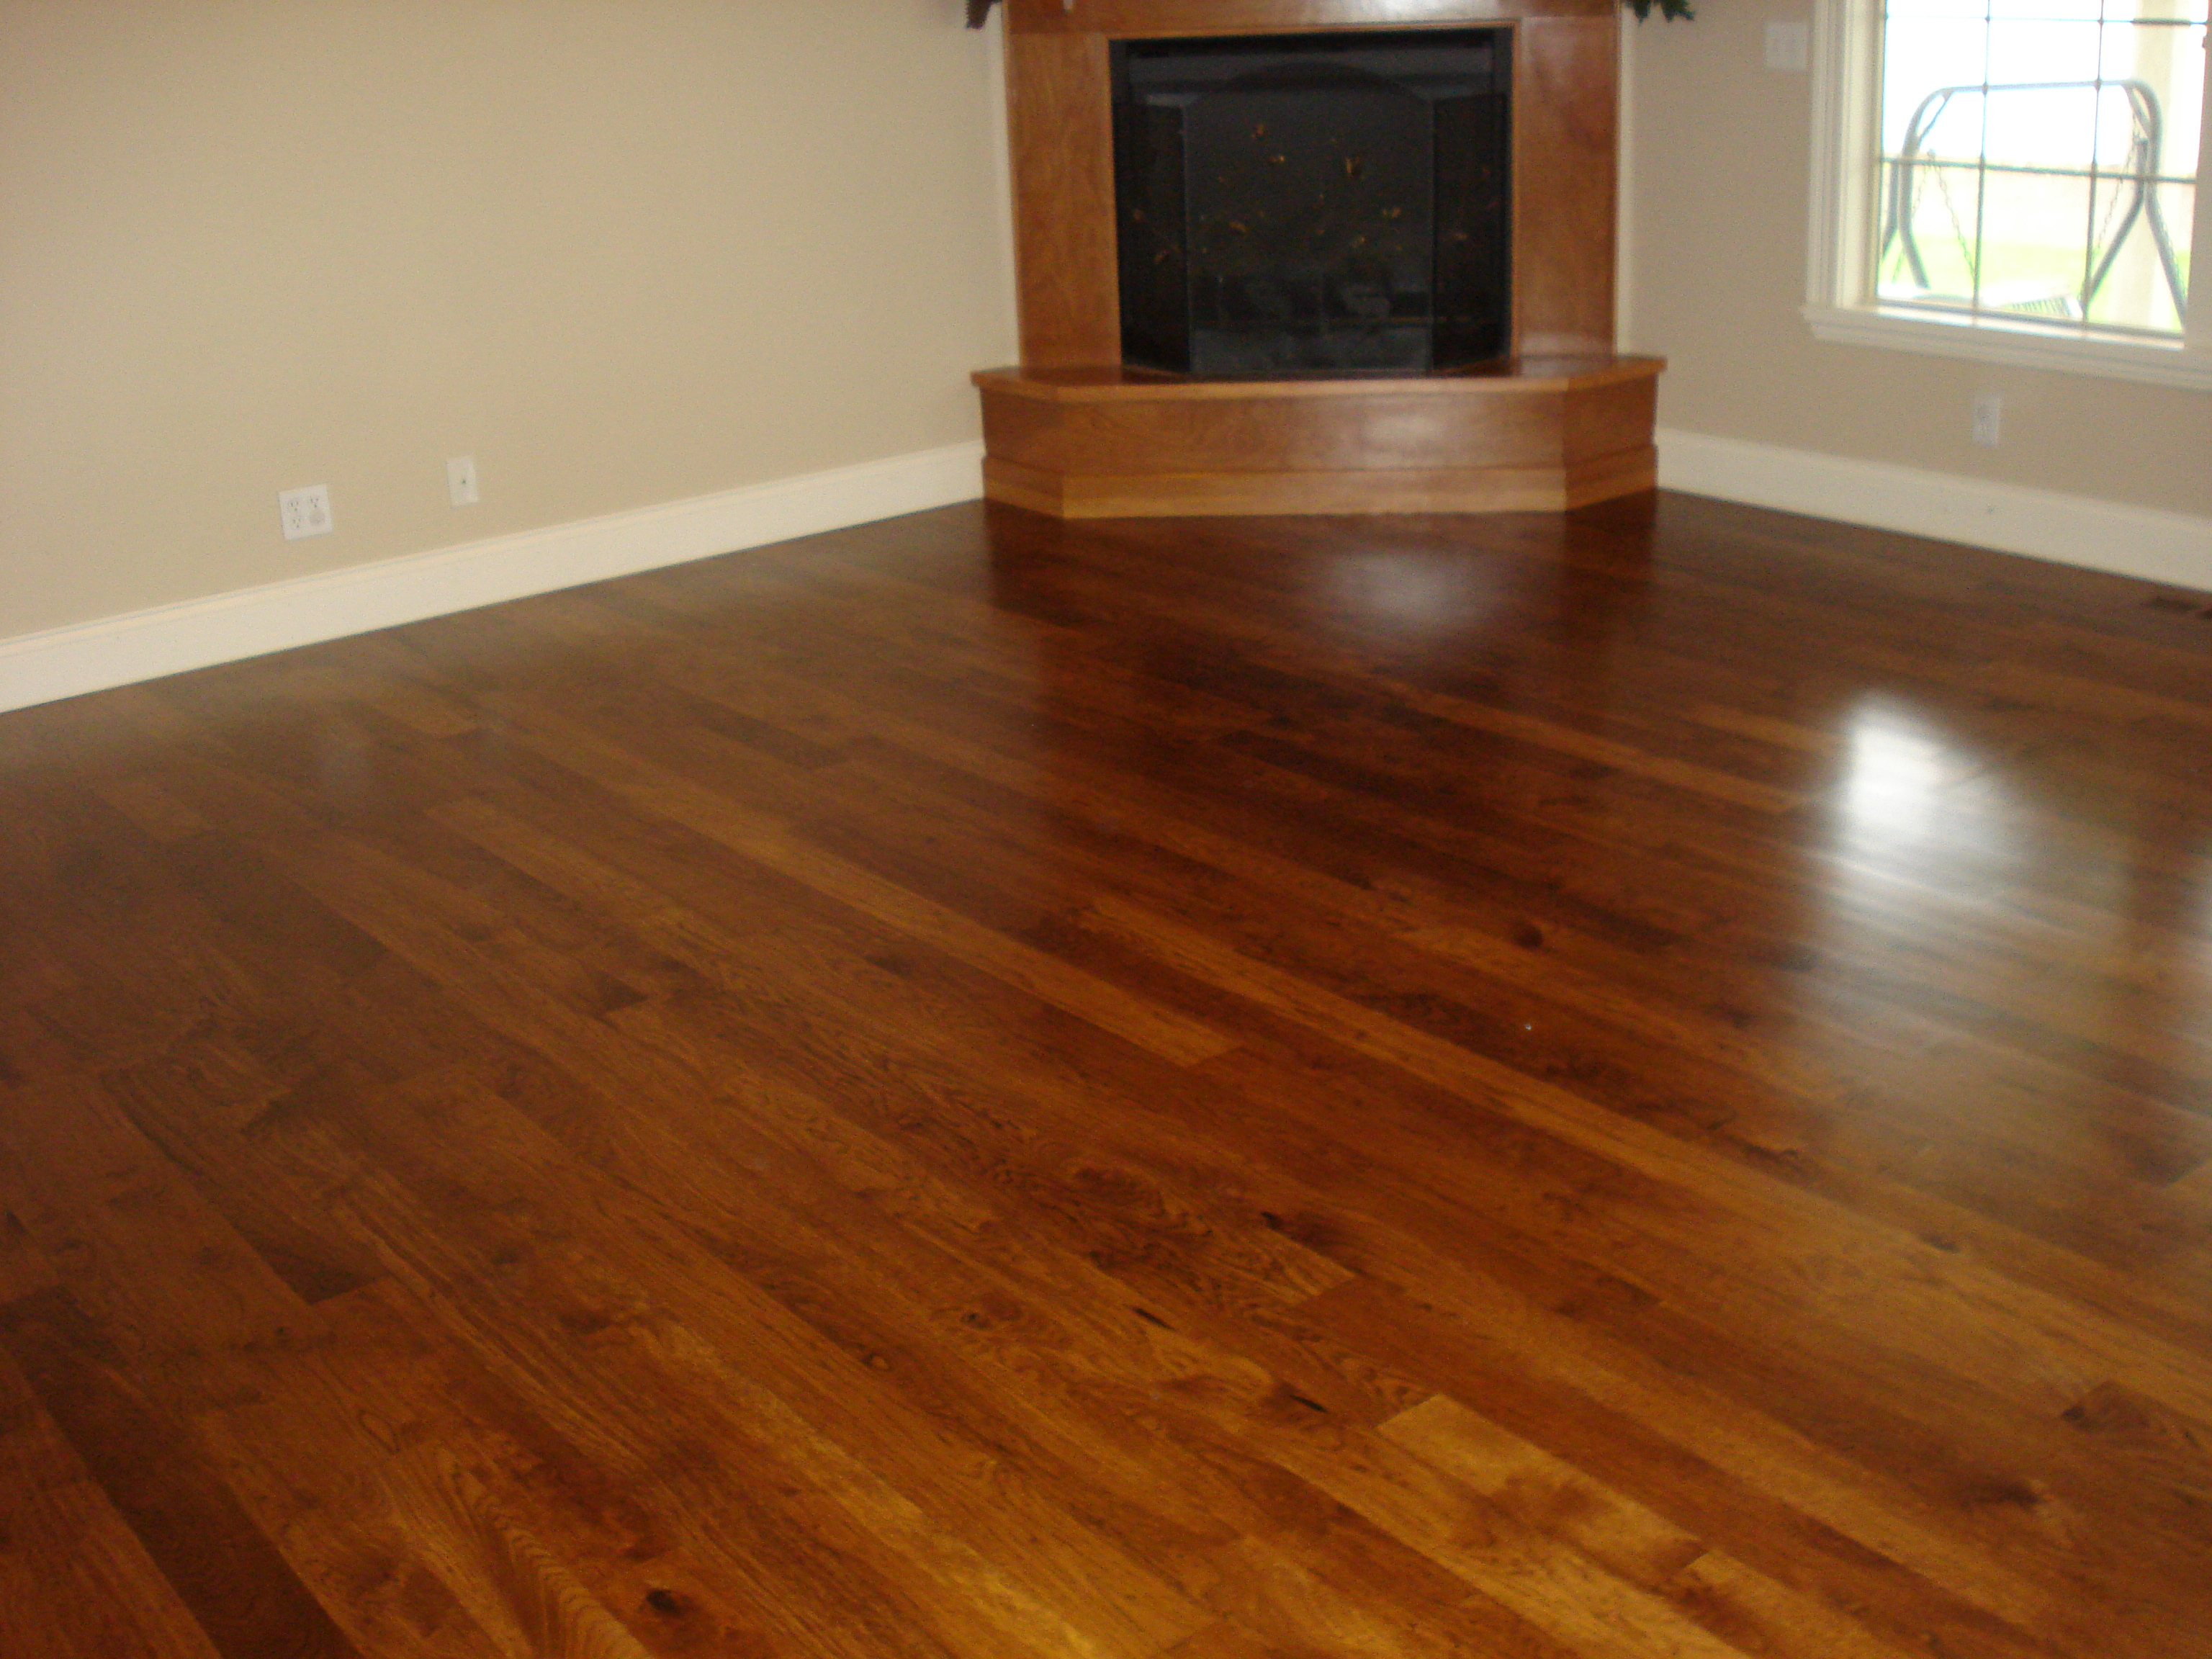 Carson s custom hardwood floors utah hardwood flooring for Hardwood floors or carpet